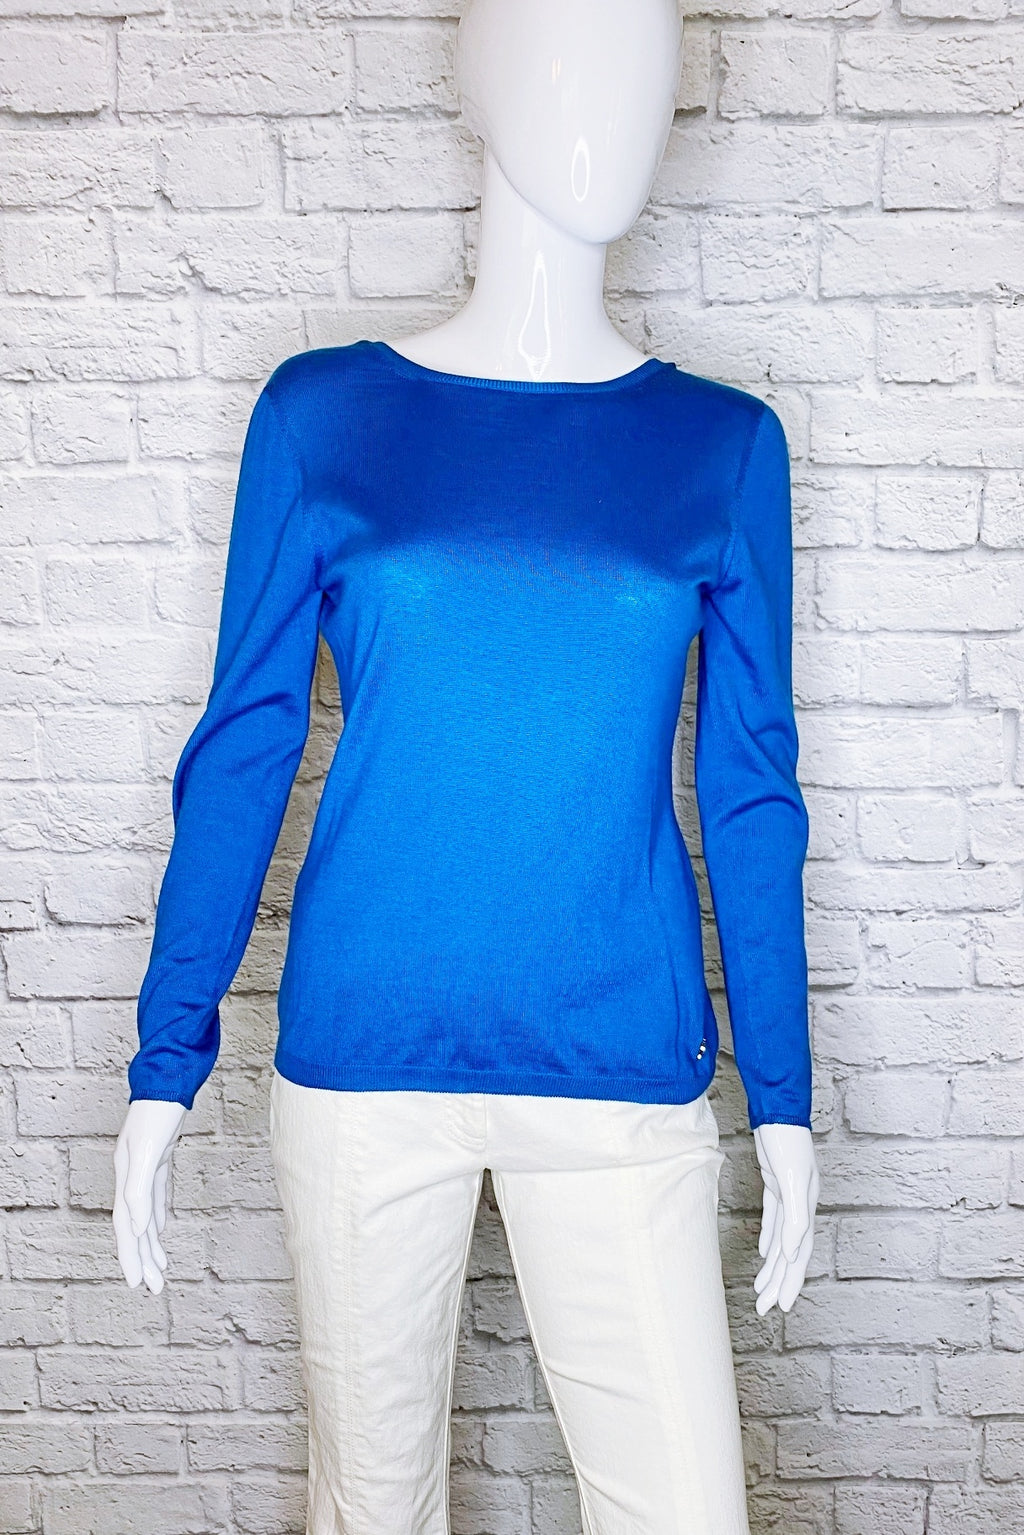 Christian Dior Cashmere-Silk Blend Low Back Sweater